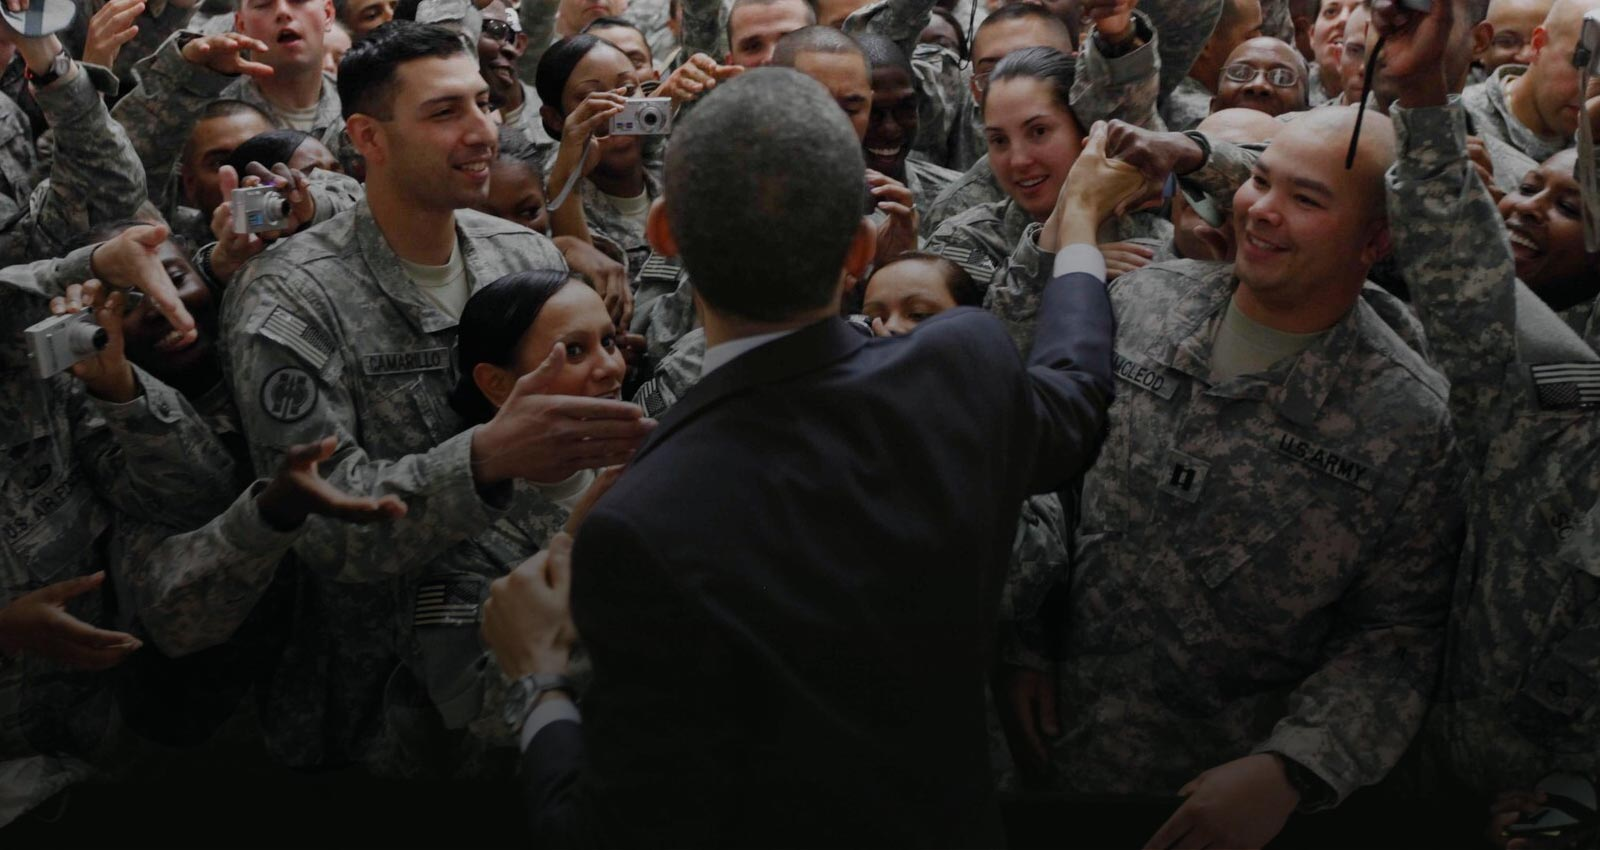 President Obama greets troops